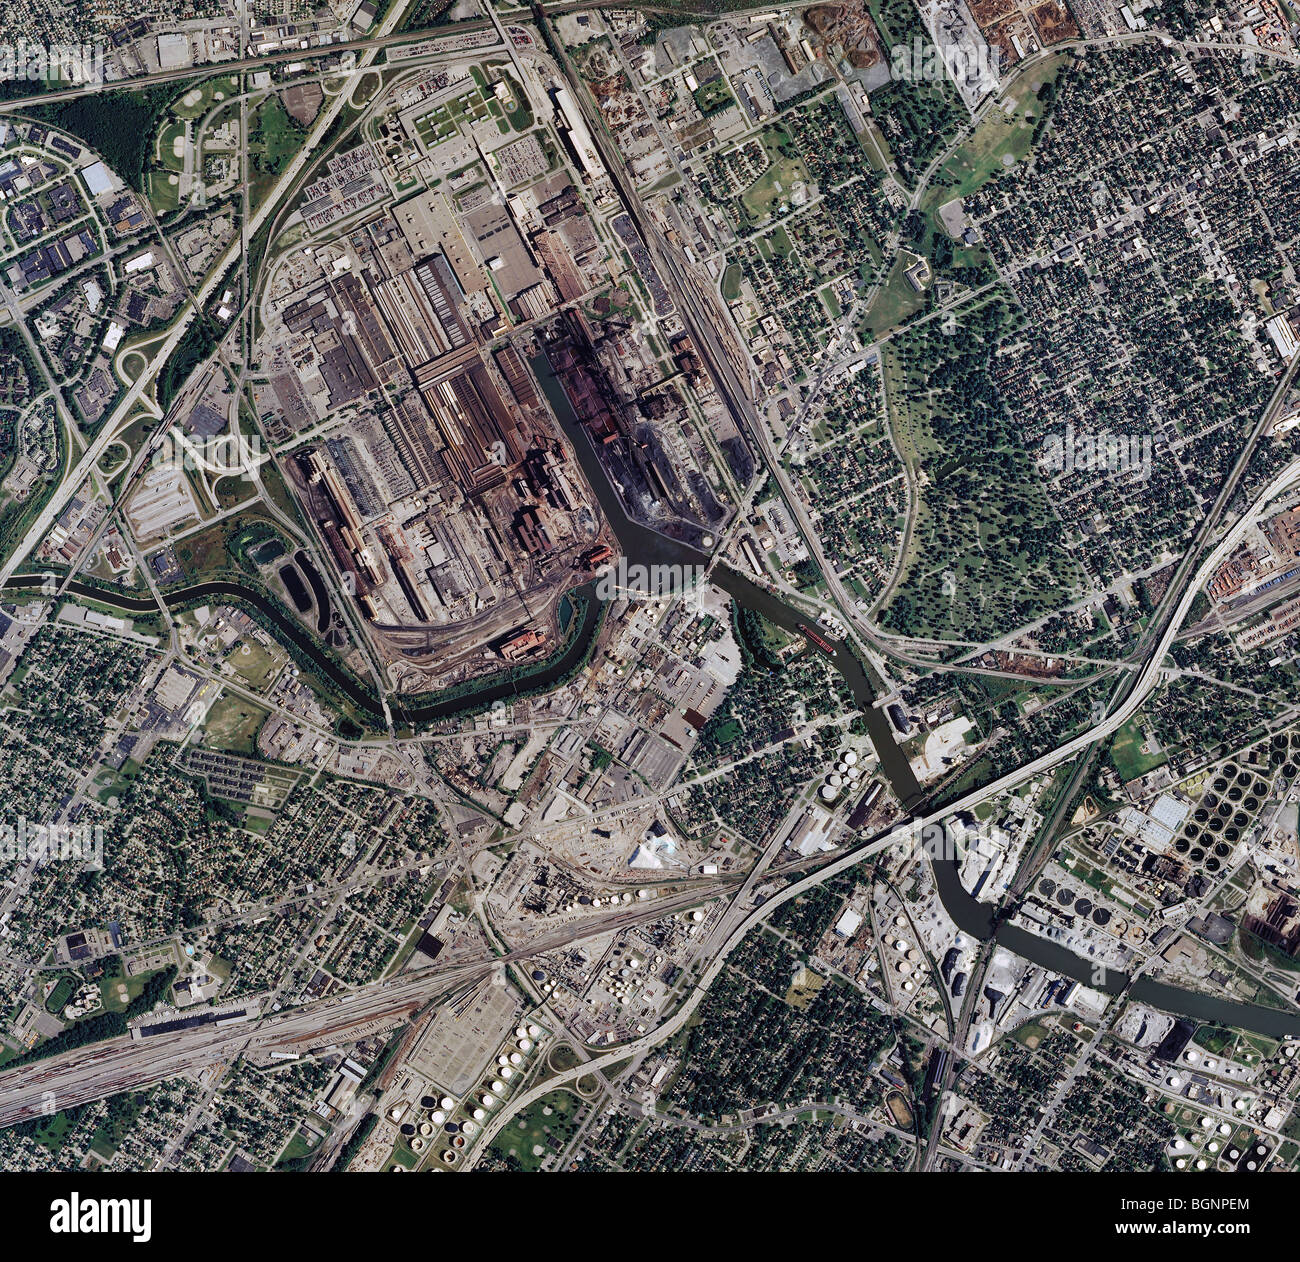 Ford Rouge Plant Map >> aerial map view above Rouge River Ford Plant Detroit Michigan Stock Photo, Royalty Free Image ...